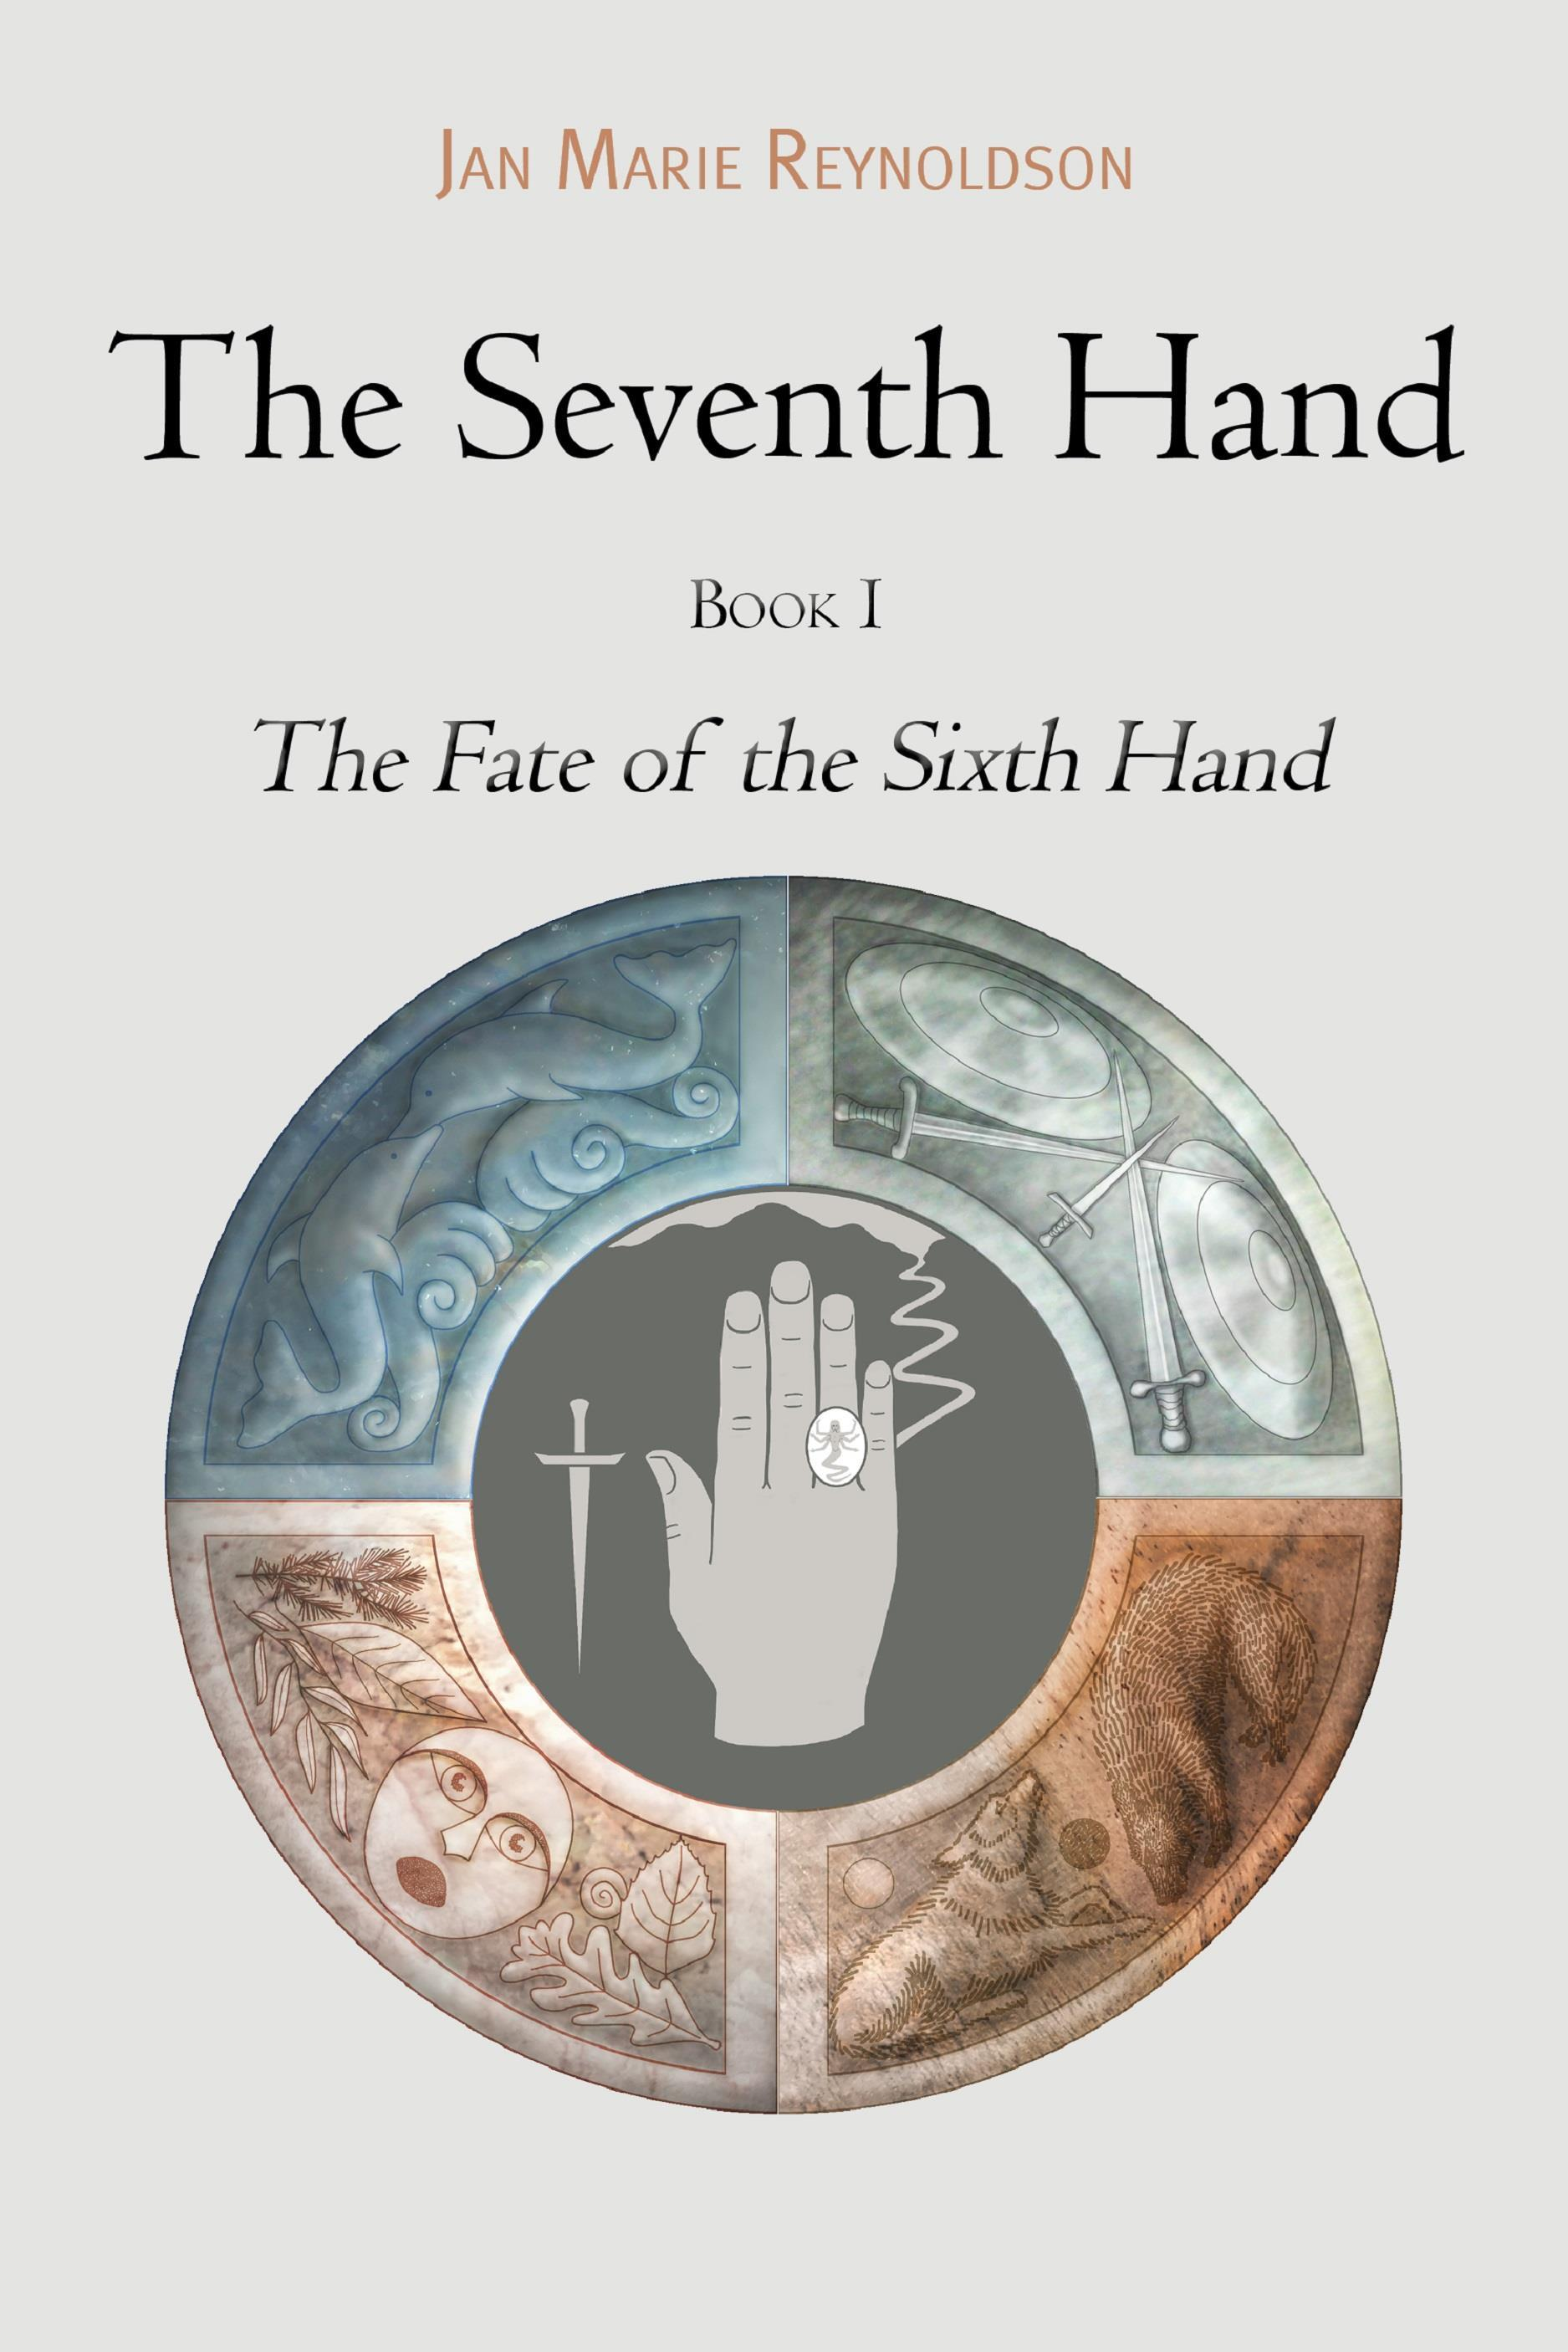 The Fate of the Sixth Hand